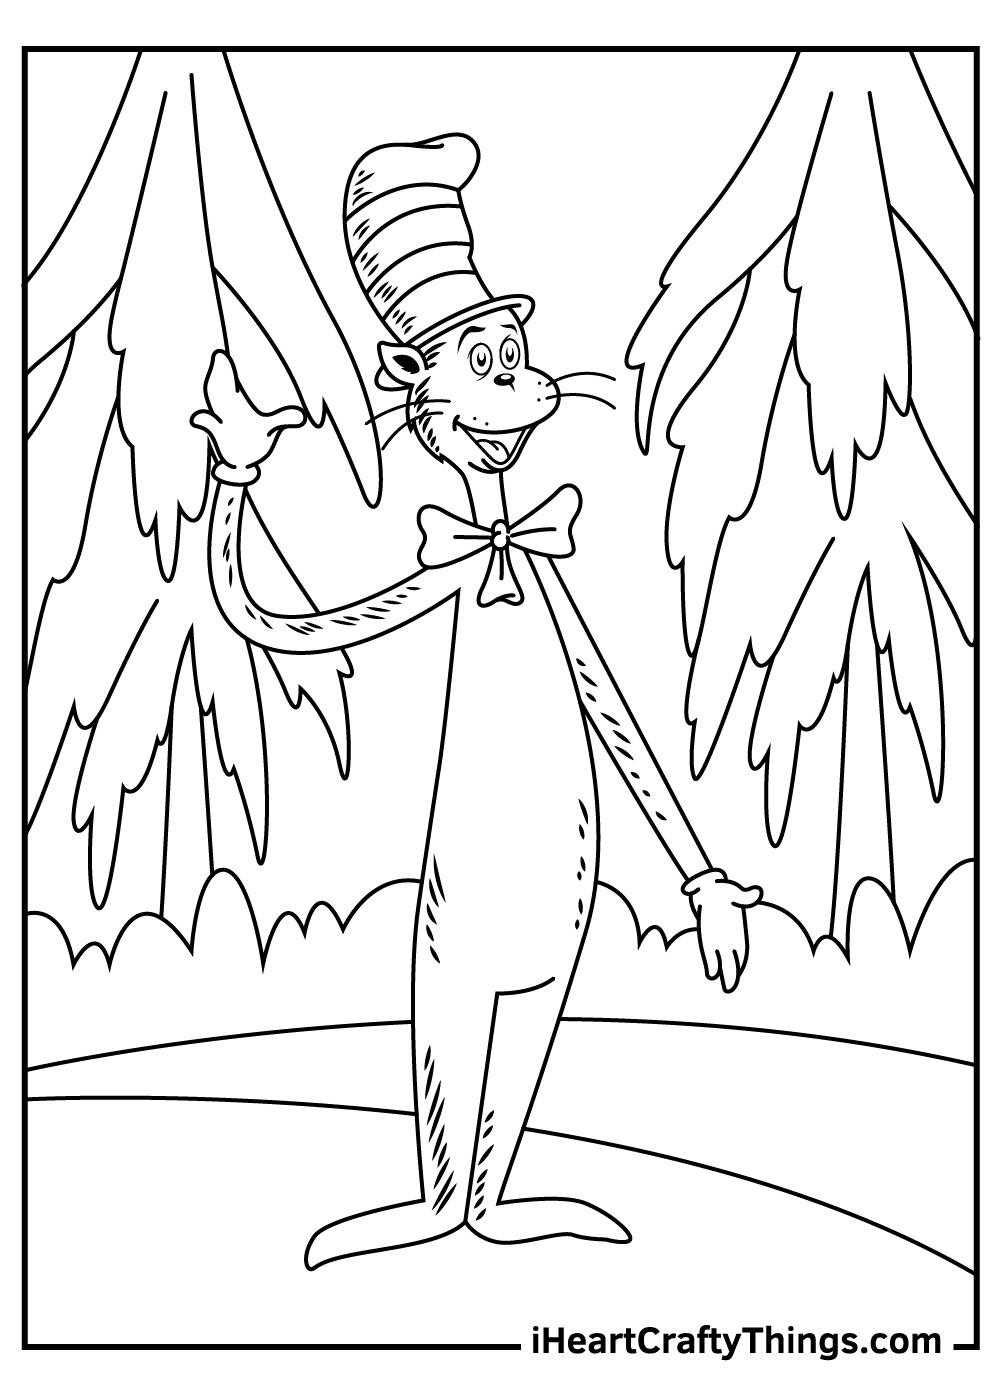 dr seuss characters cat in the hat coloring pages